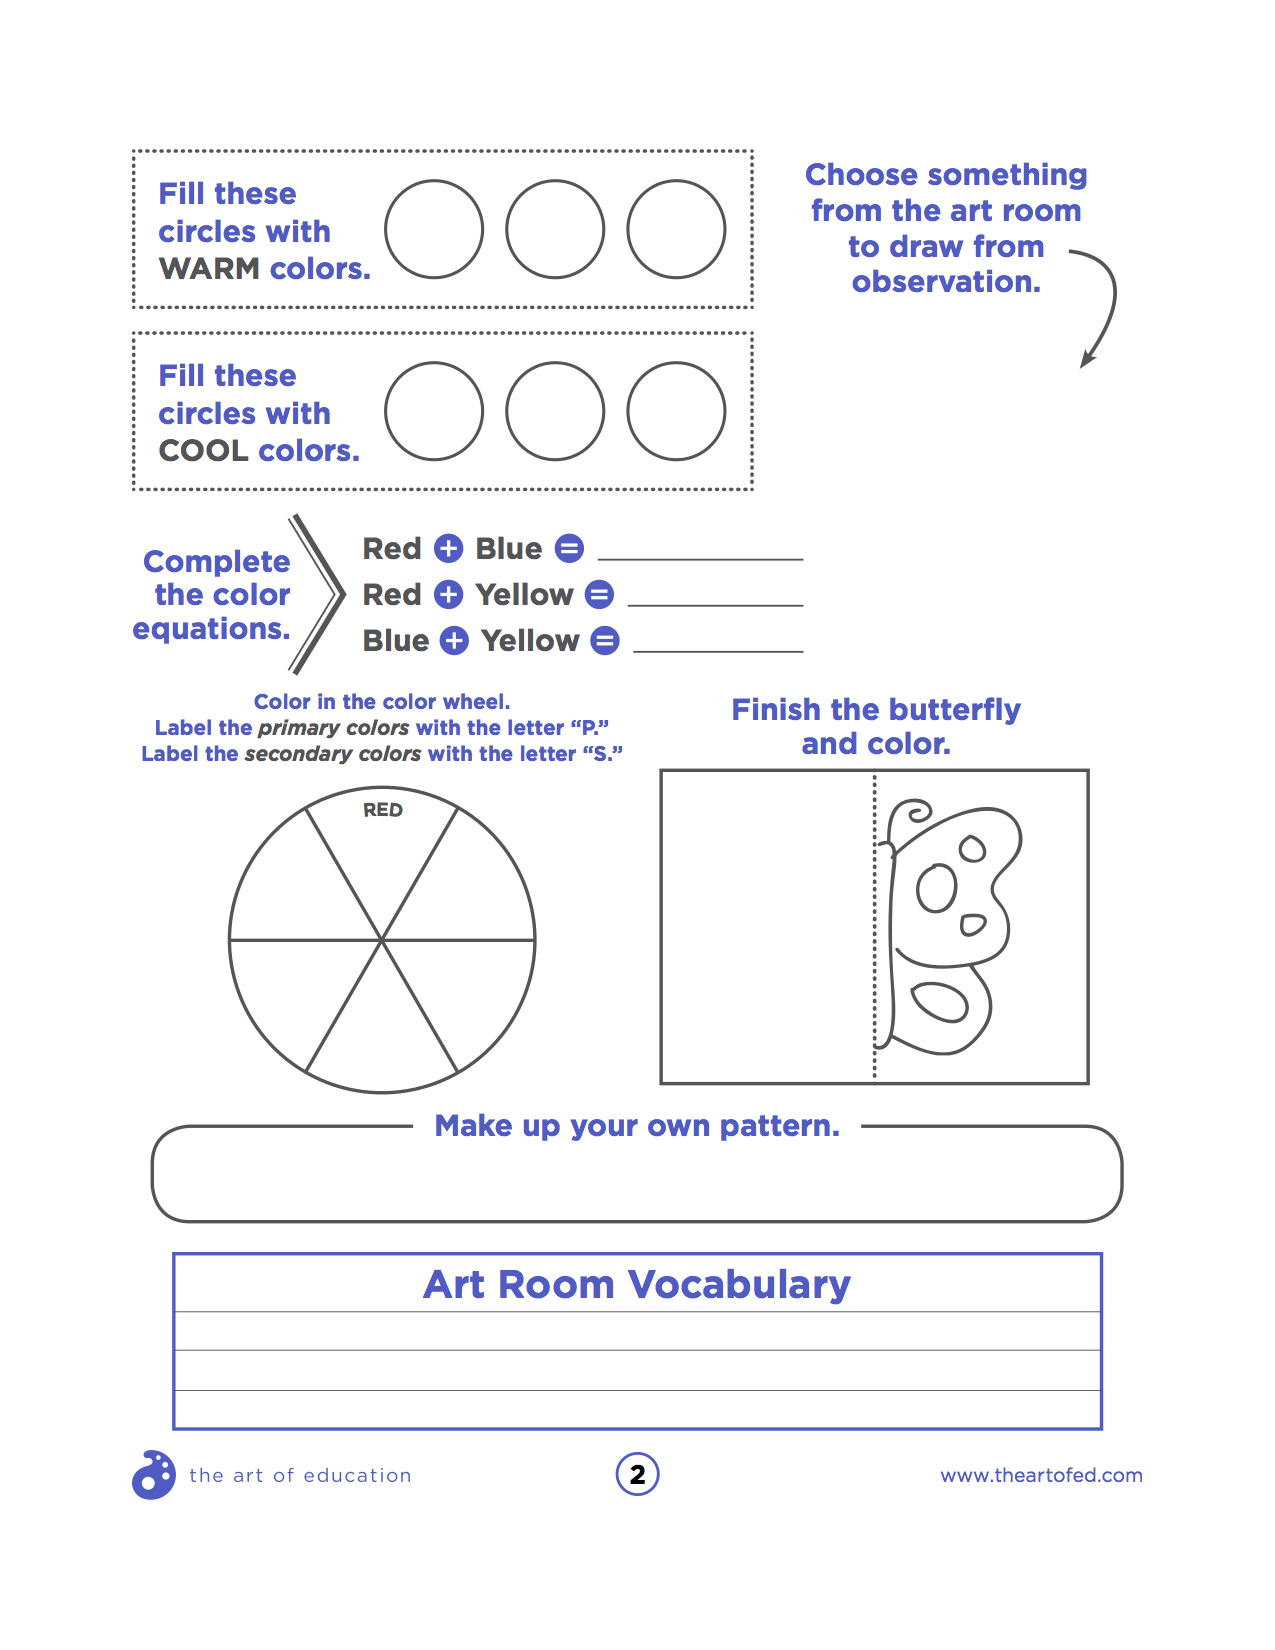 medium resolution of The Perfect Portfolio Cover Sheets for Your K-8 Students - The Art of  Education University   Art curriculum planning